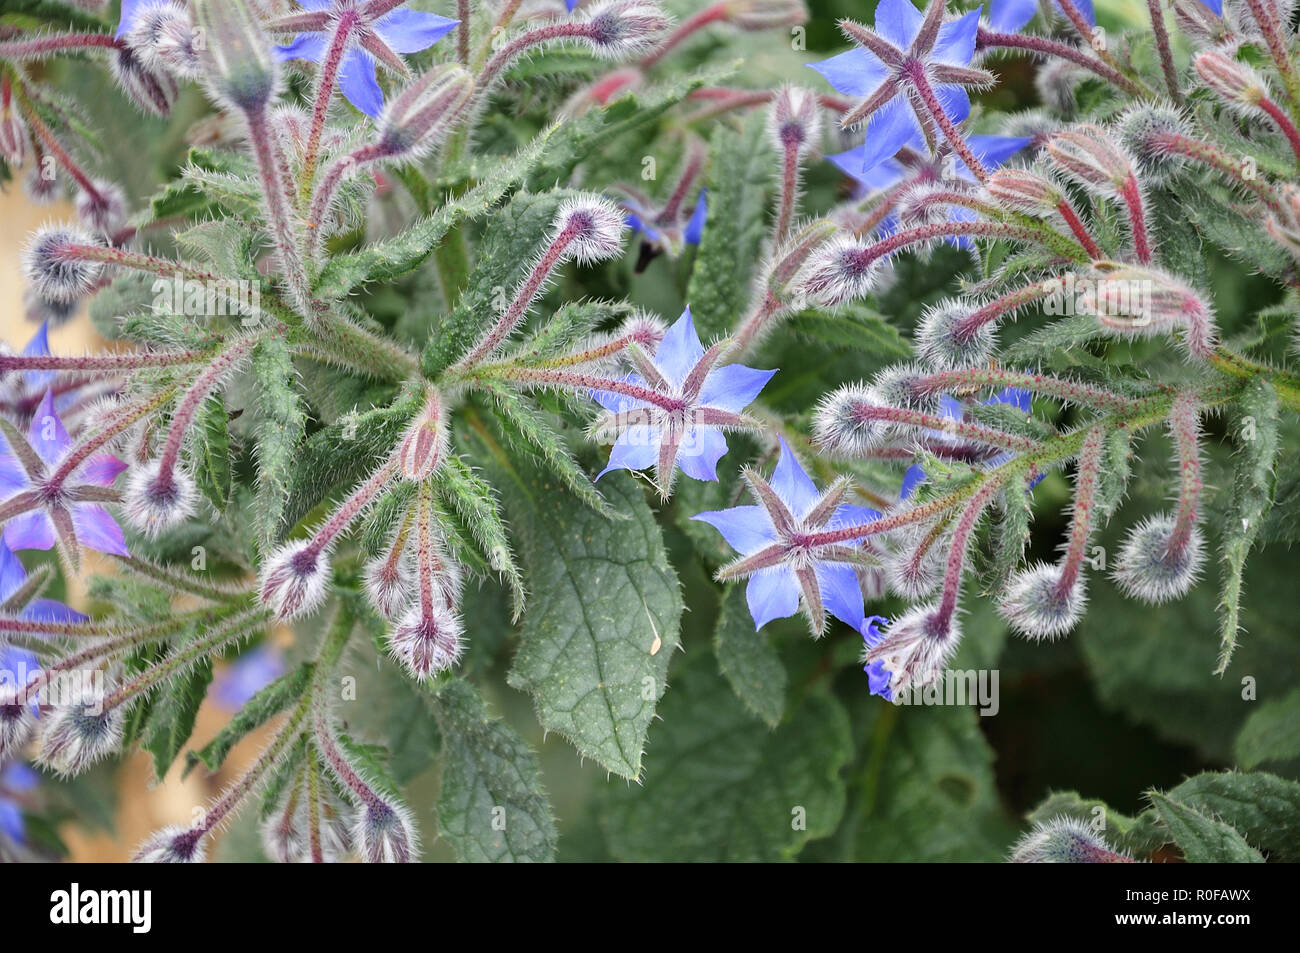 close-up of a small bush of borago officinalis, the starflower, with blue blossoms and hairy leaves and stems Stock Photo